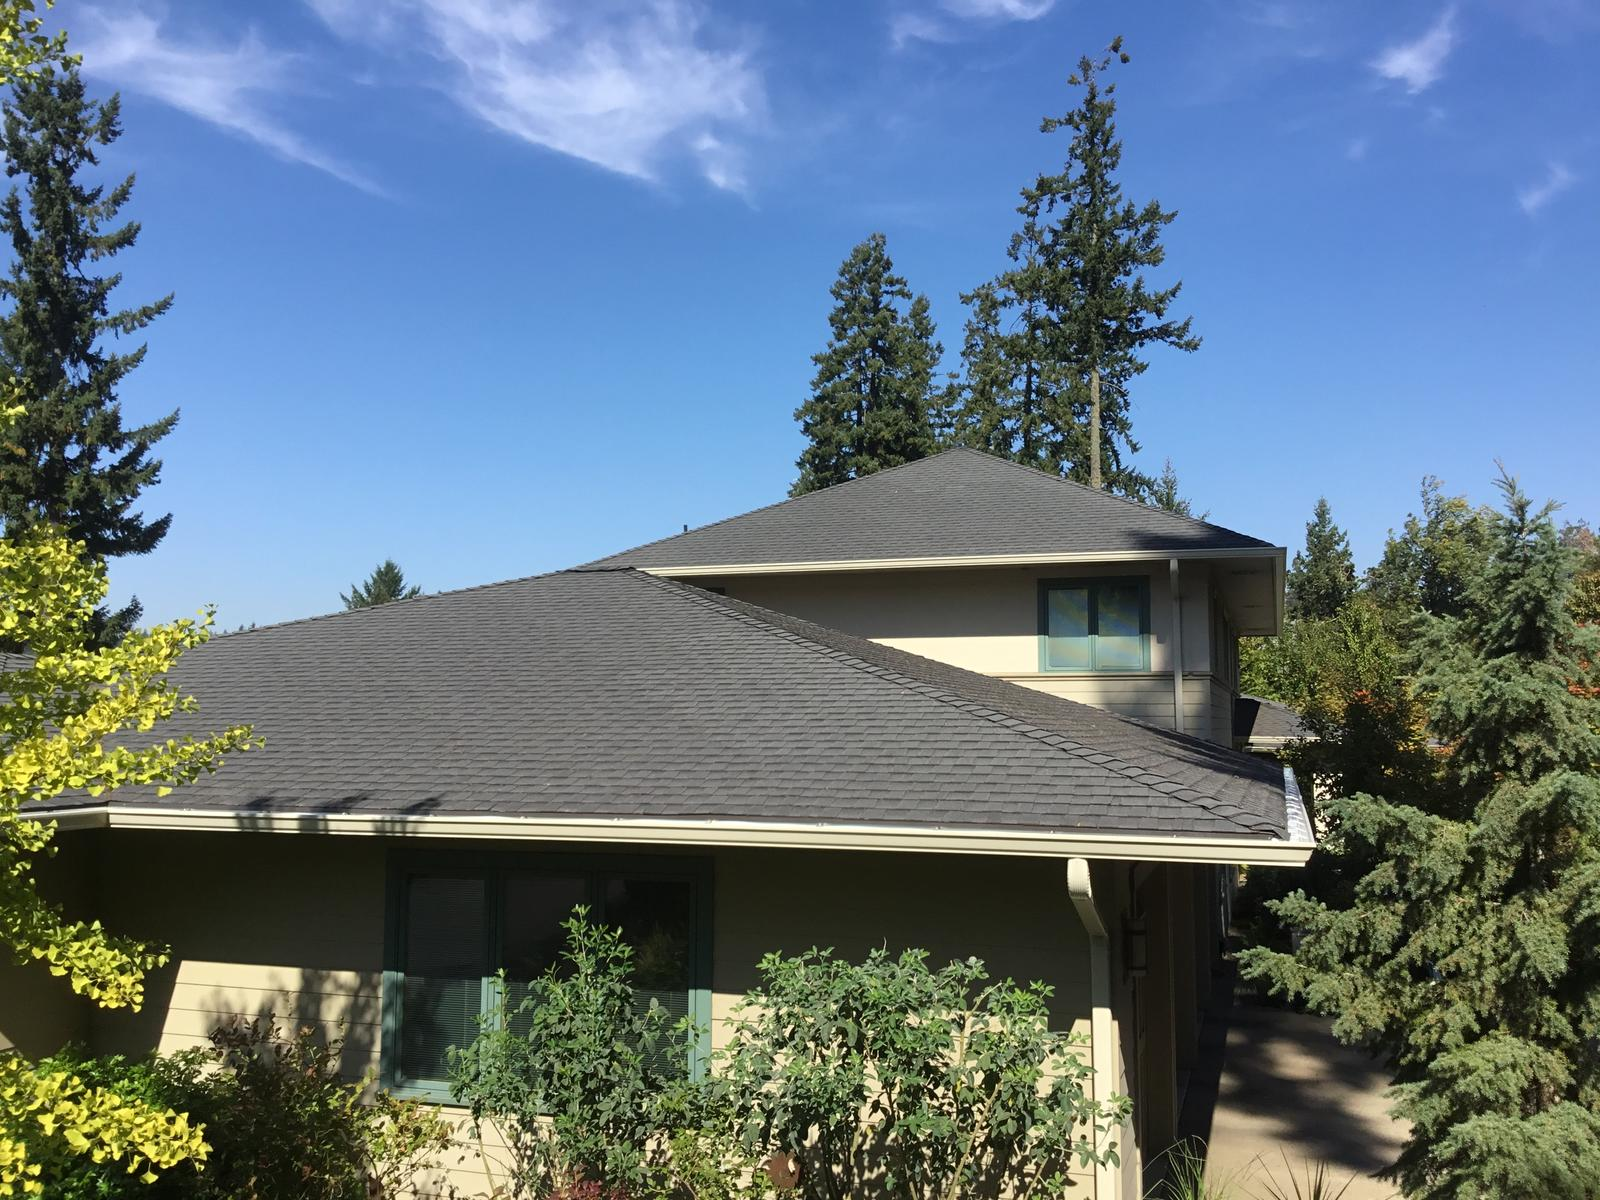 11 Pebble Stone Clay Gutters Albany Oregon Gutter